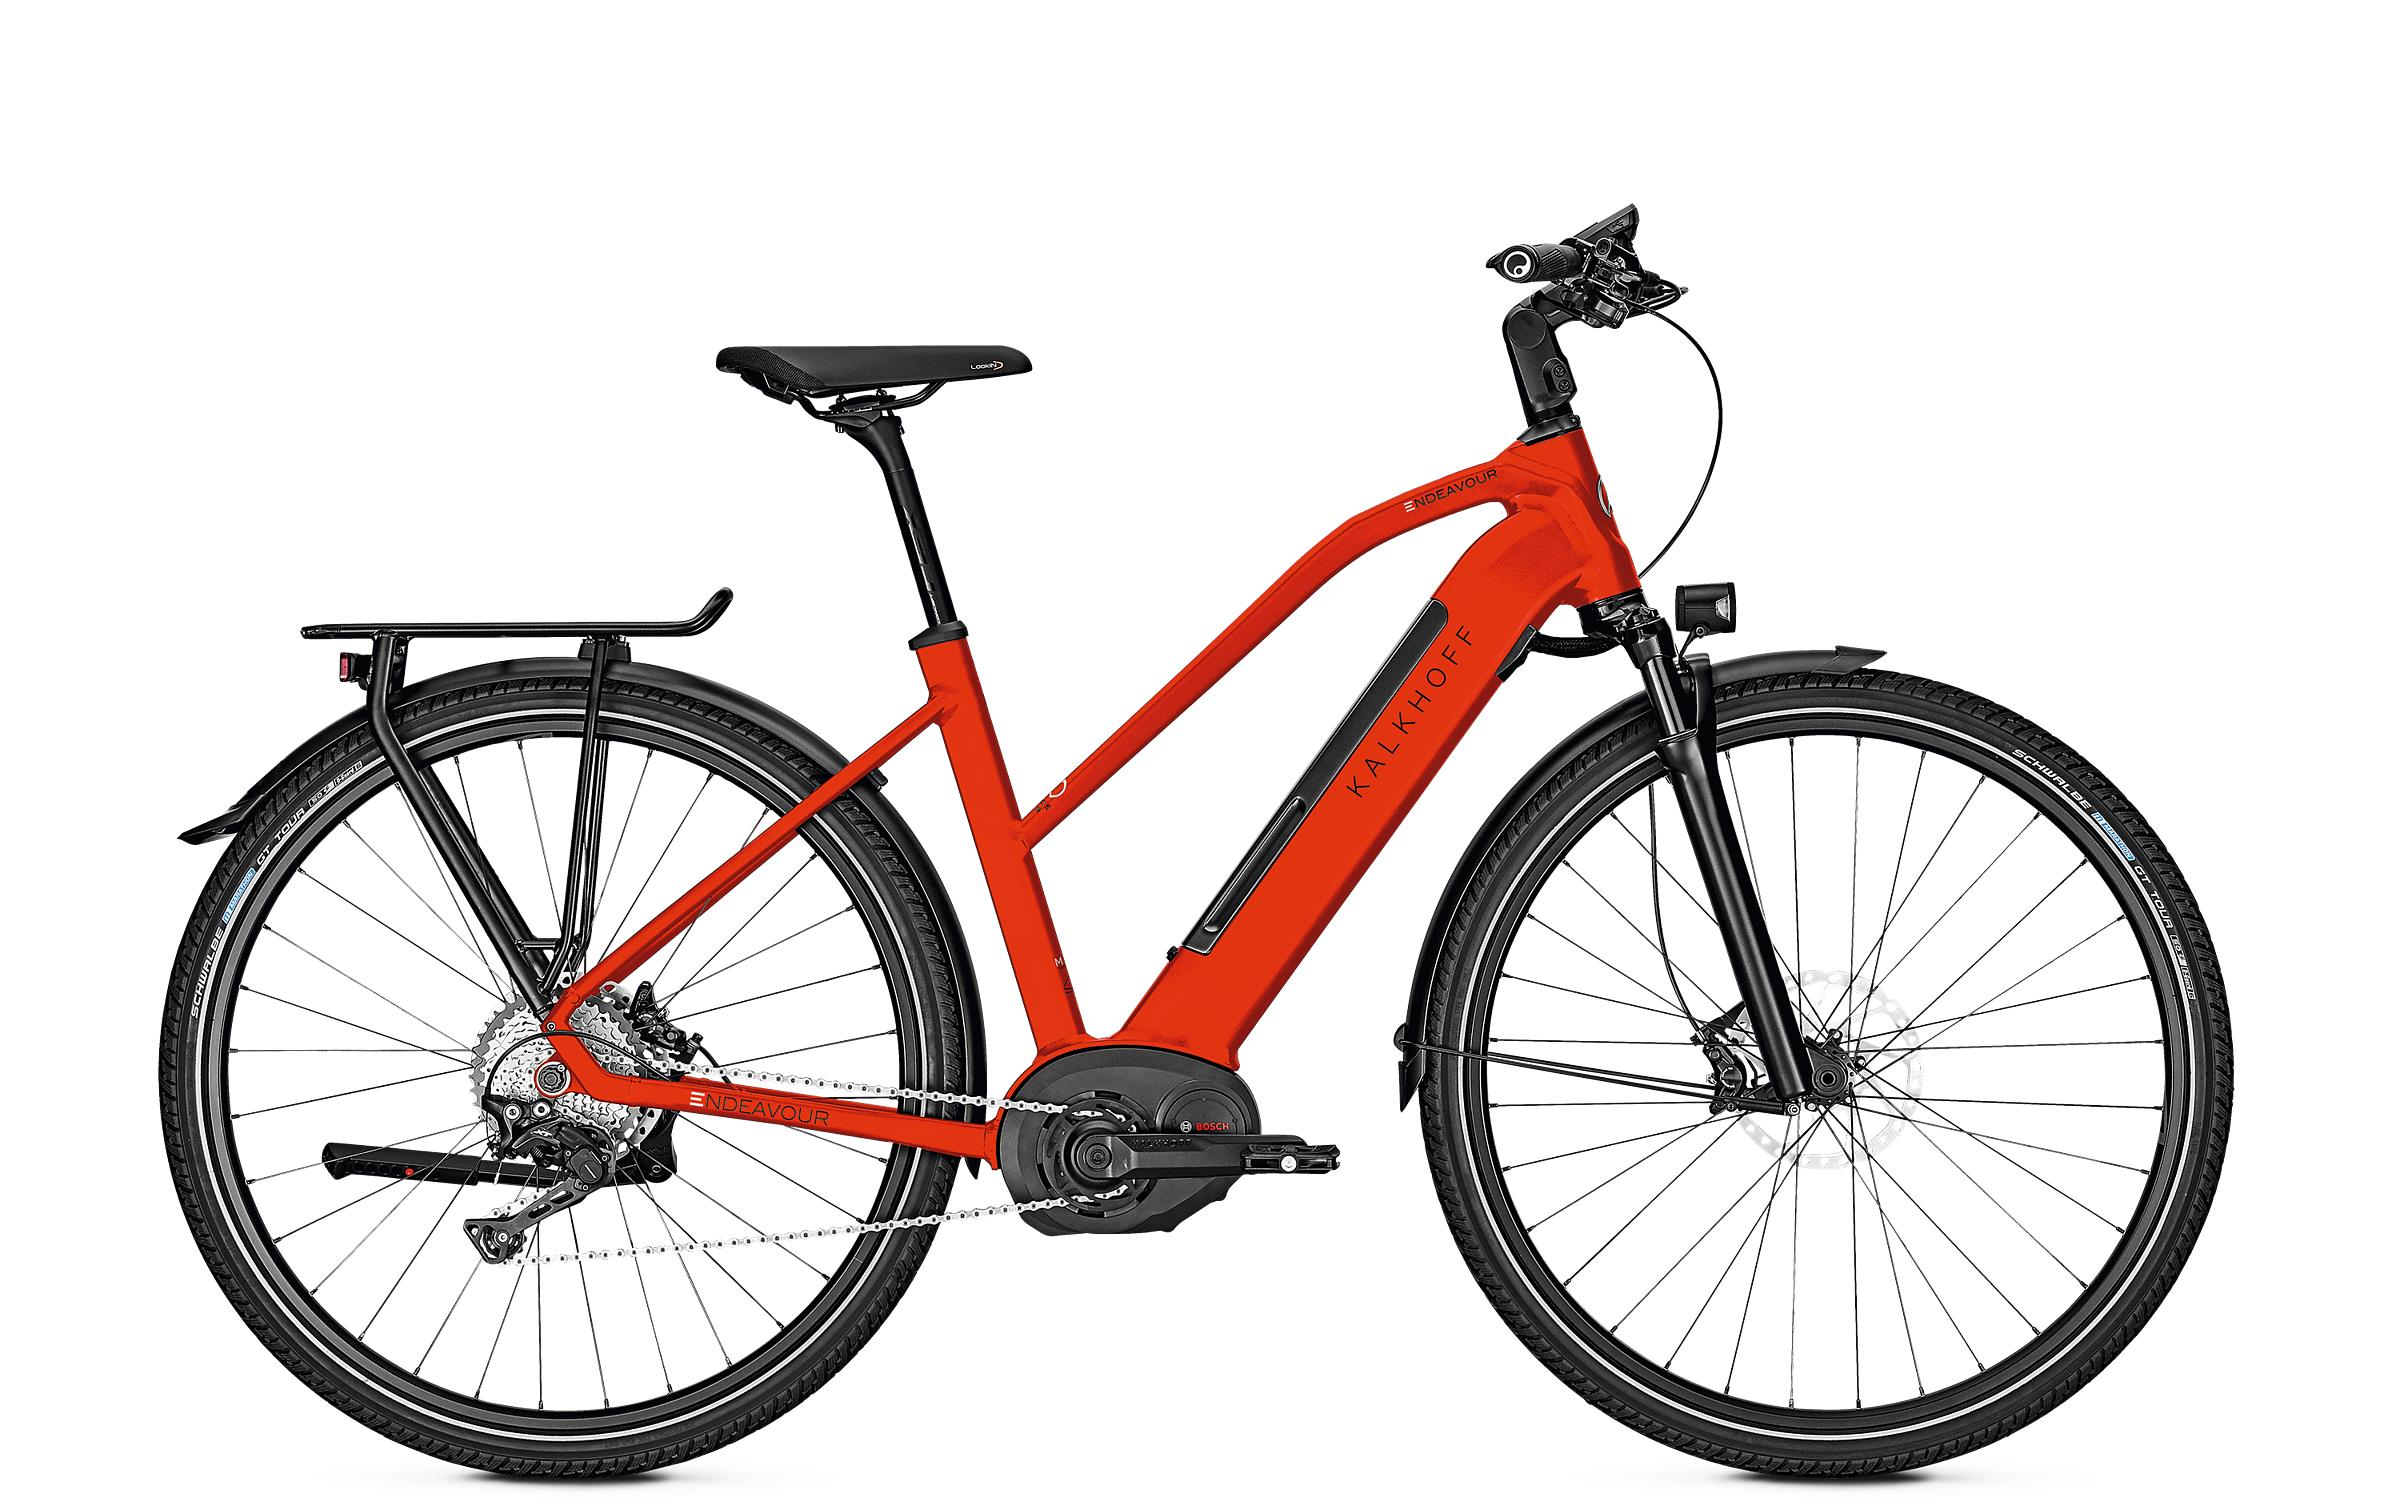 Kalkhoff ENDEAVOUR 5.B EXCITE - 28 Trapez 482 Wh -  firered glossy 2019